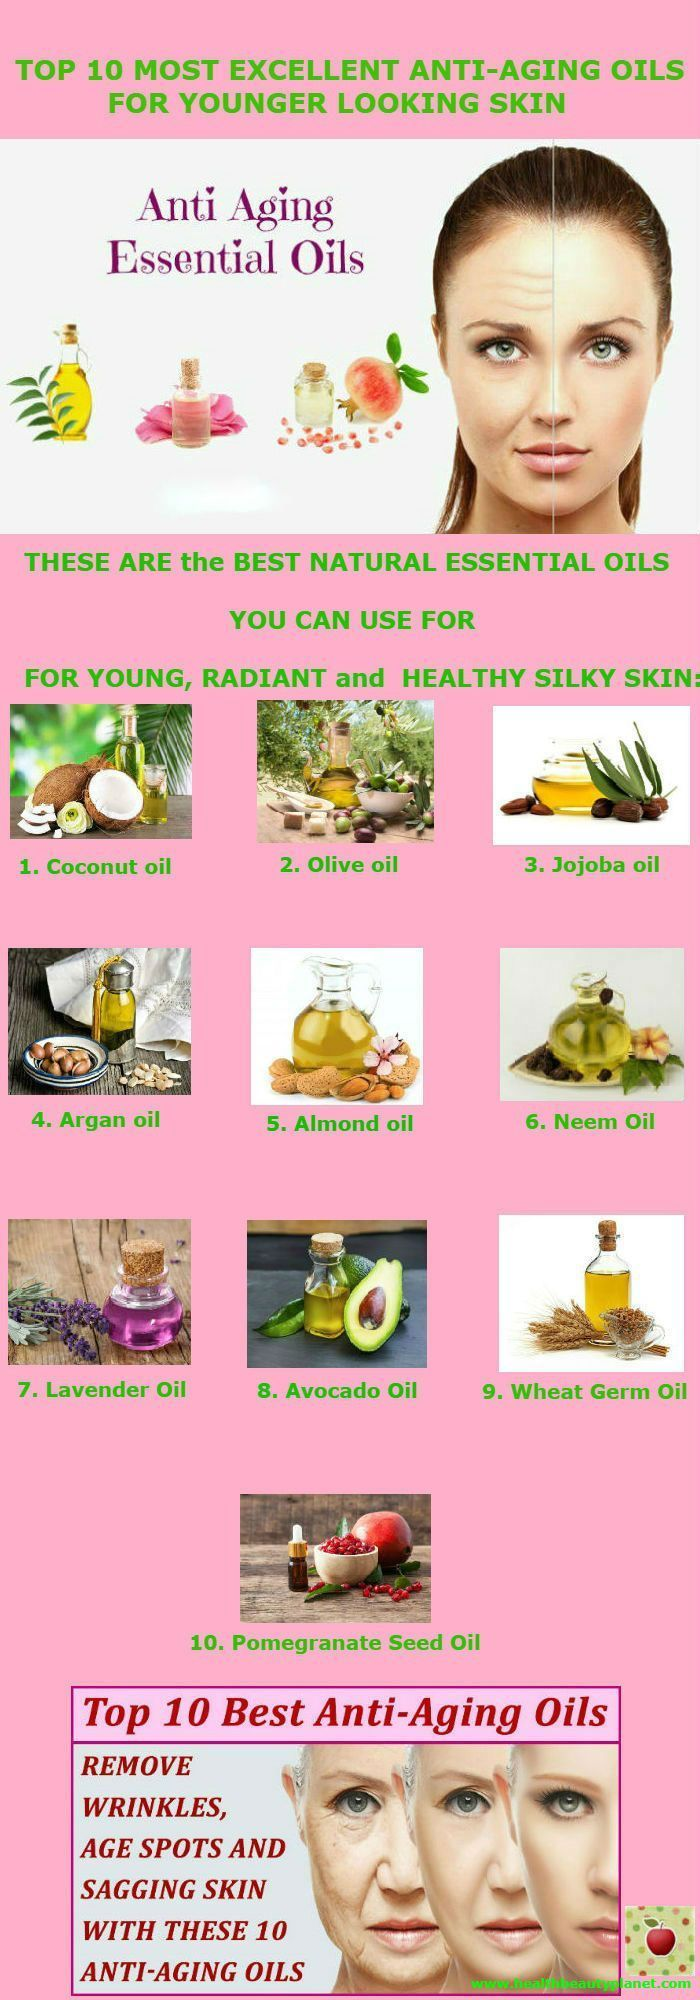 Top 10 Most Excellent Anti-Aging Oils for Younger Looking Skin